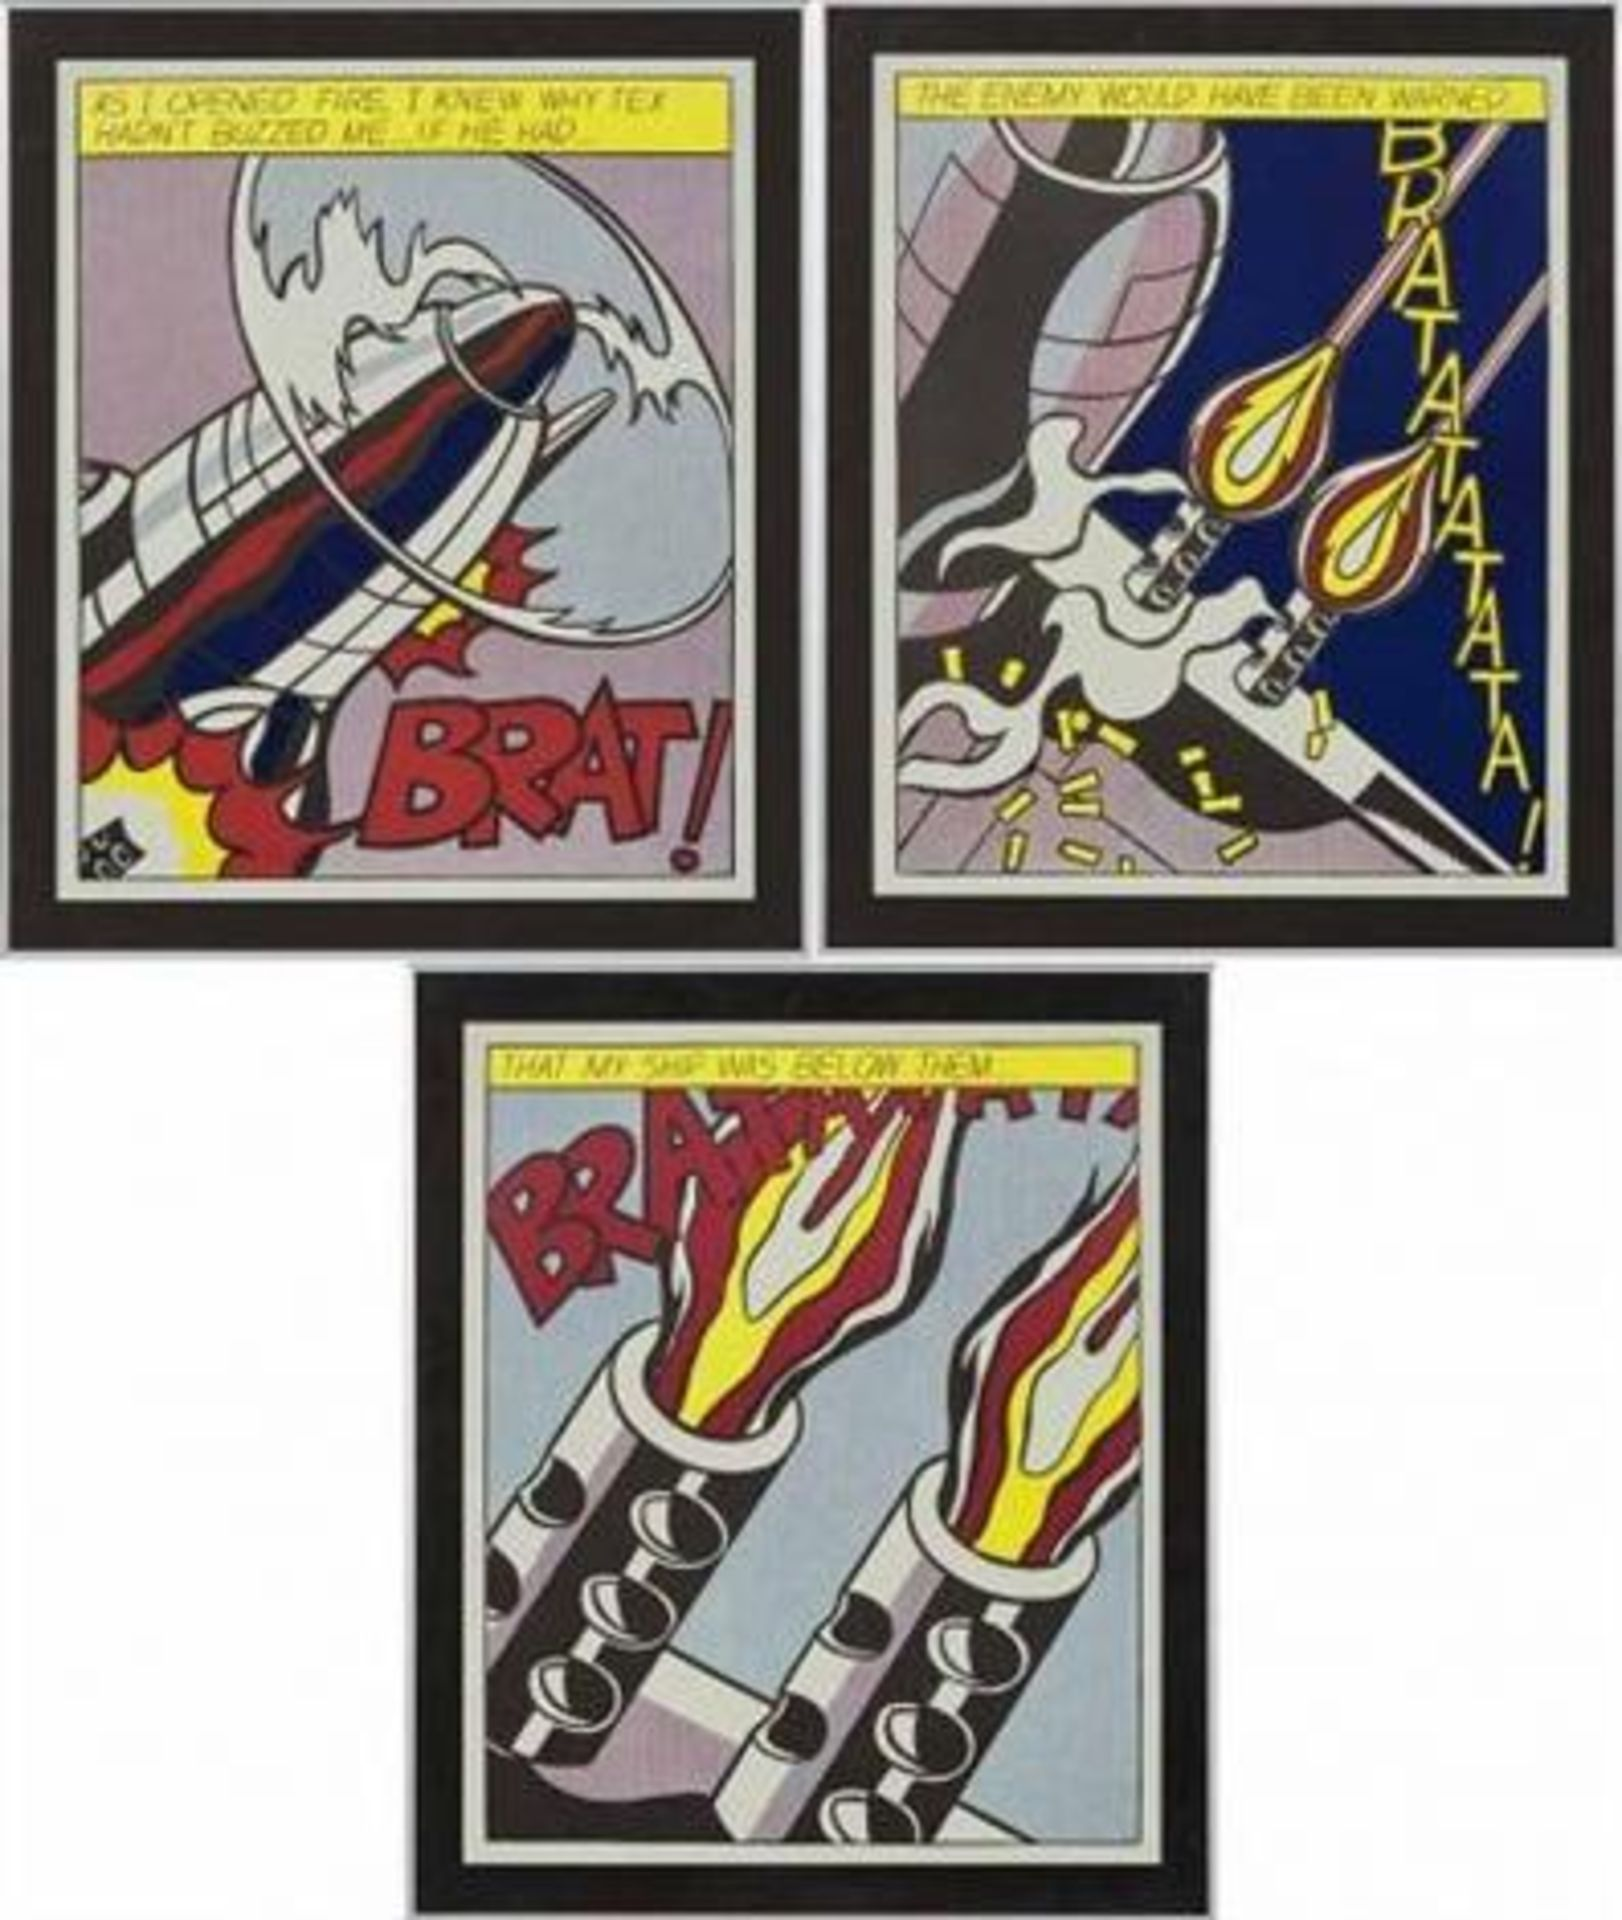 Los 23 - After Roy Lichtenstein (1932-1997) As i opened fire nach 1966 Offset-Lithographie Drei Poster